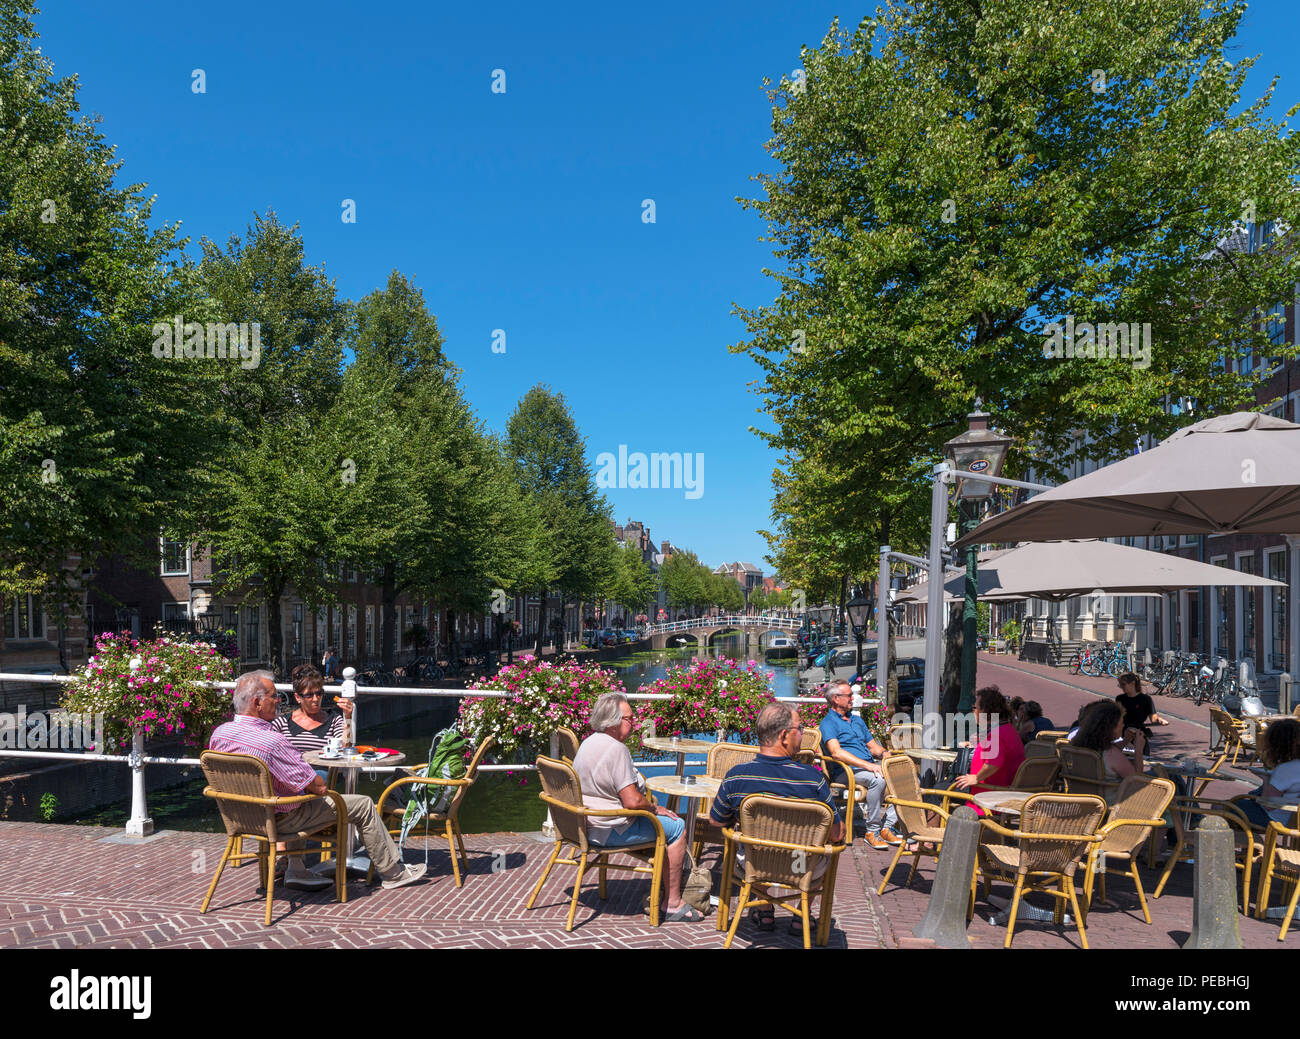 Cafe on Nonnenbrug on the Rapenburg Canal, Leiden, Zuid-Holland (South Holland), Netherlands - Stock Image